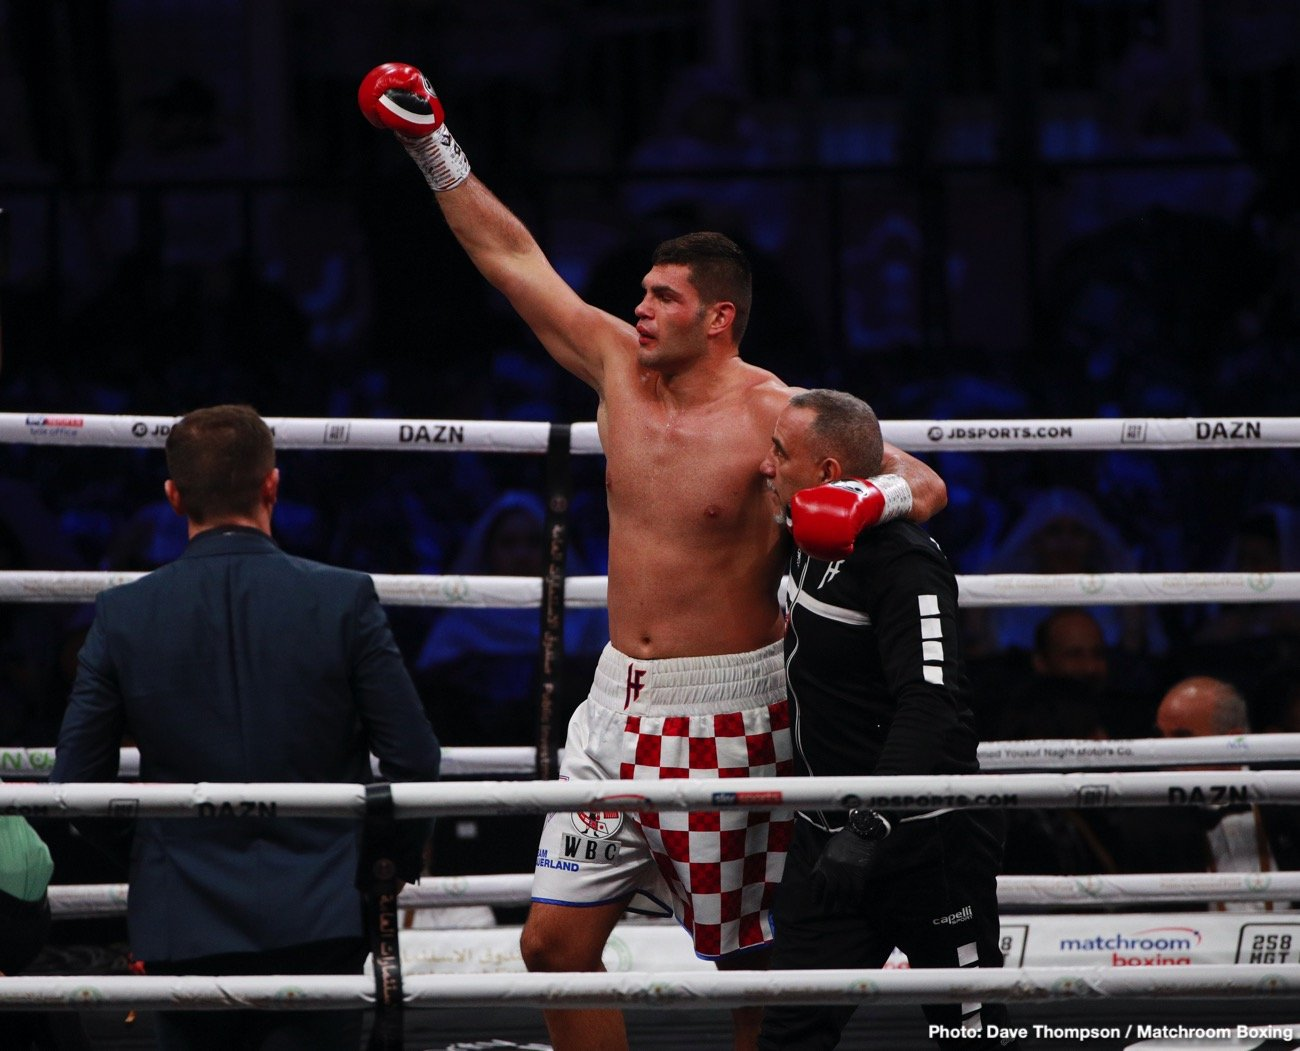 Boxing News - It's a matter of time before contender Filip Hrgovic gets a title shot against IBF/WBA/WBO heavyweight champion Anthony Joshua or WBC belt holder Tyson Fury. The unbeaten highly ranked Hrgovic (10-0, 7 KOs) and his promoter Nisse Sauerland are playing a waiting game before they get a crack at Joshua or Fury.